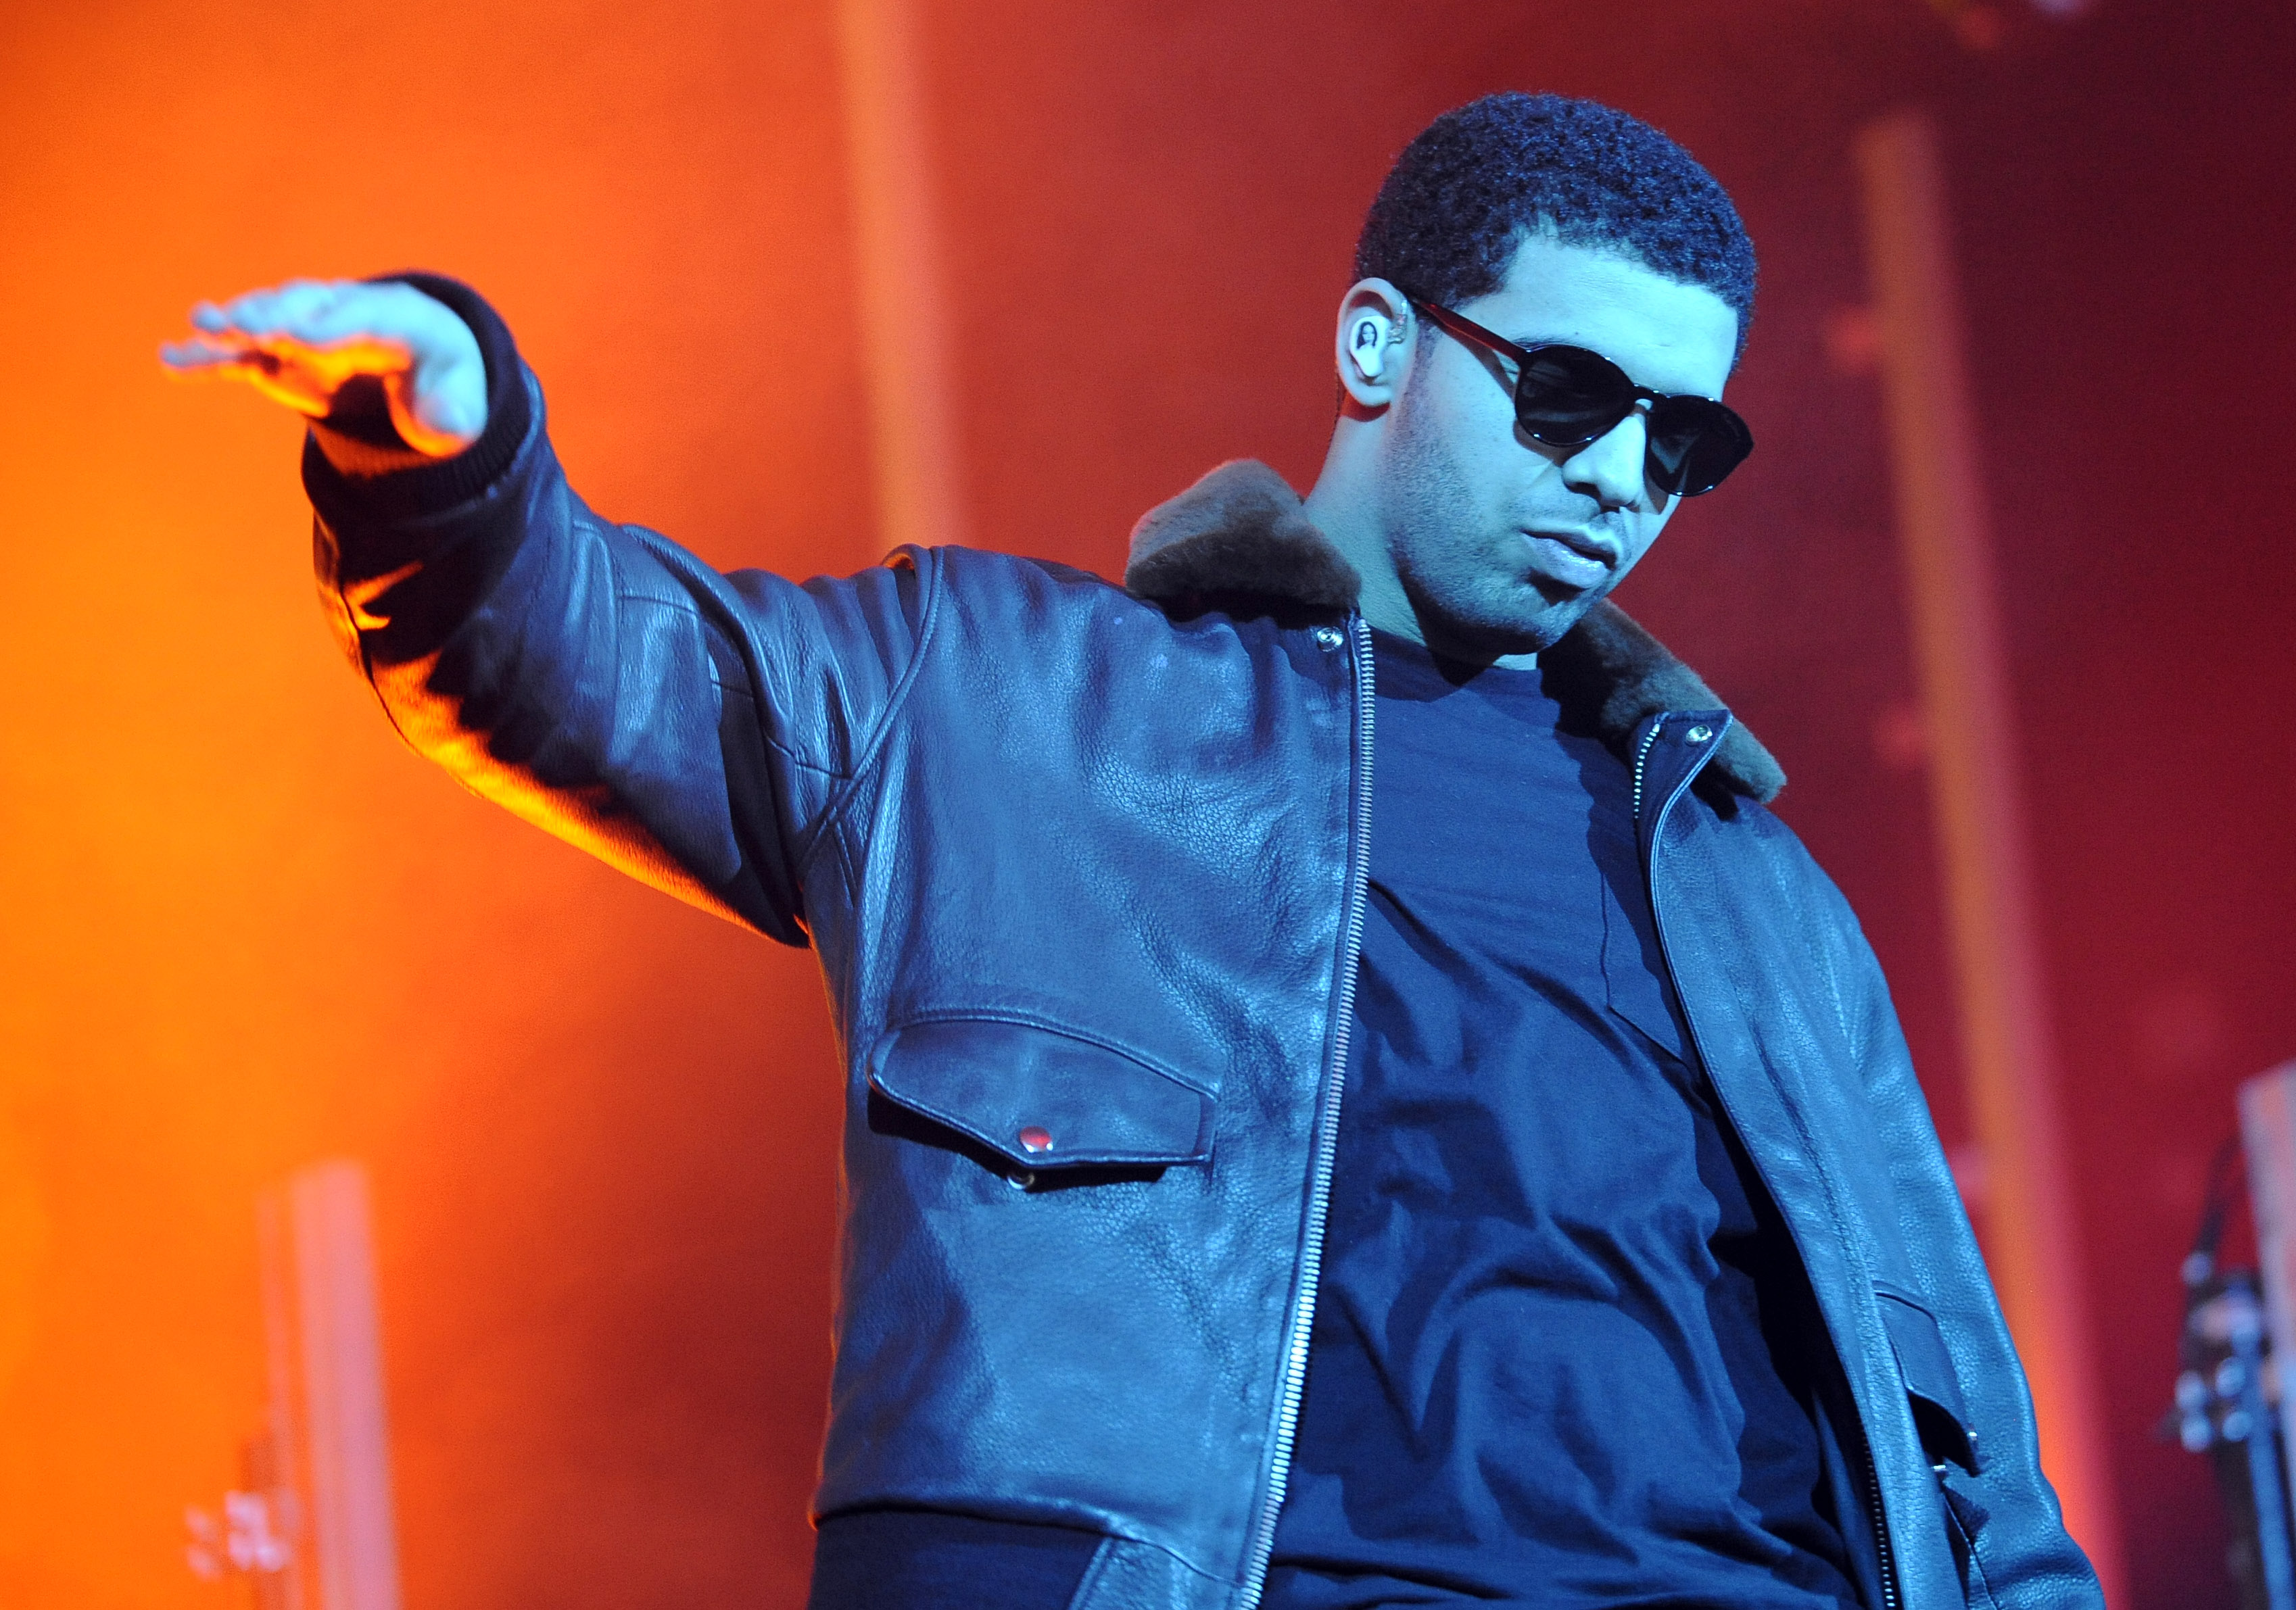 Canadian rapper Drake performs live on stage at the Carling O2 Academy on January 4, 2011 in Glasgow, Scotland.